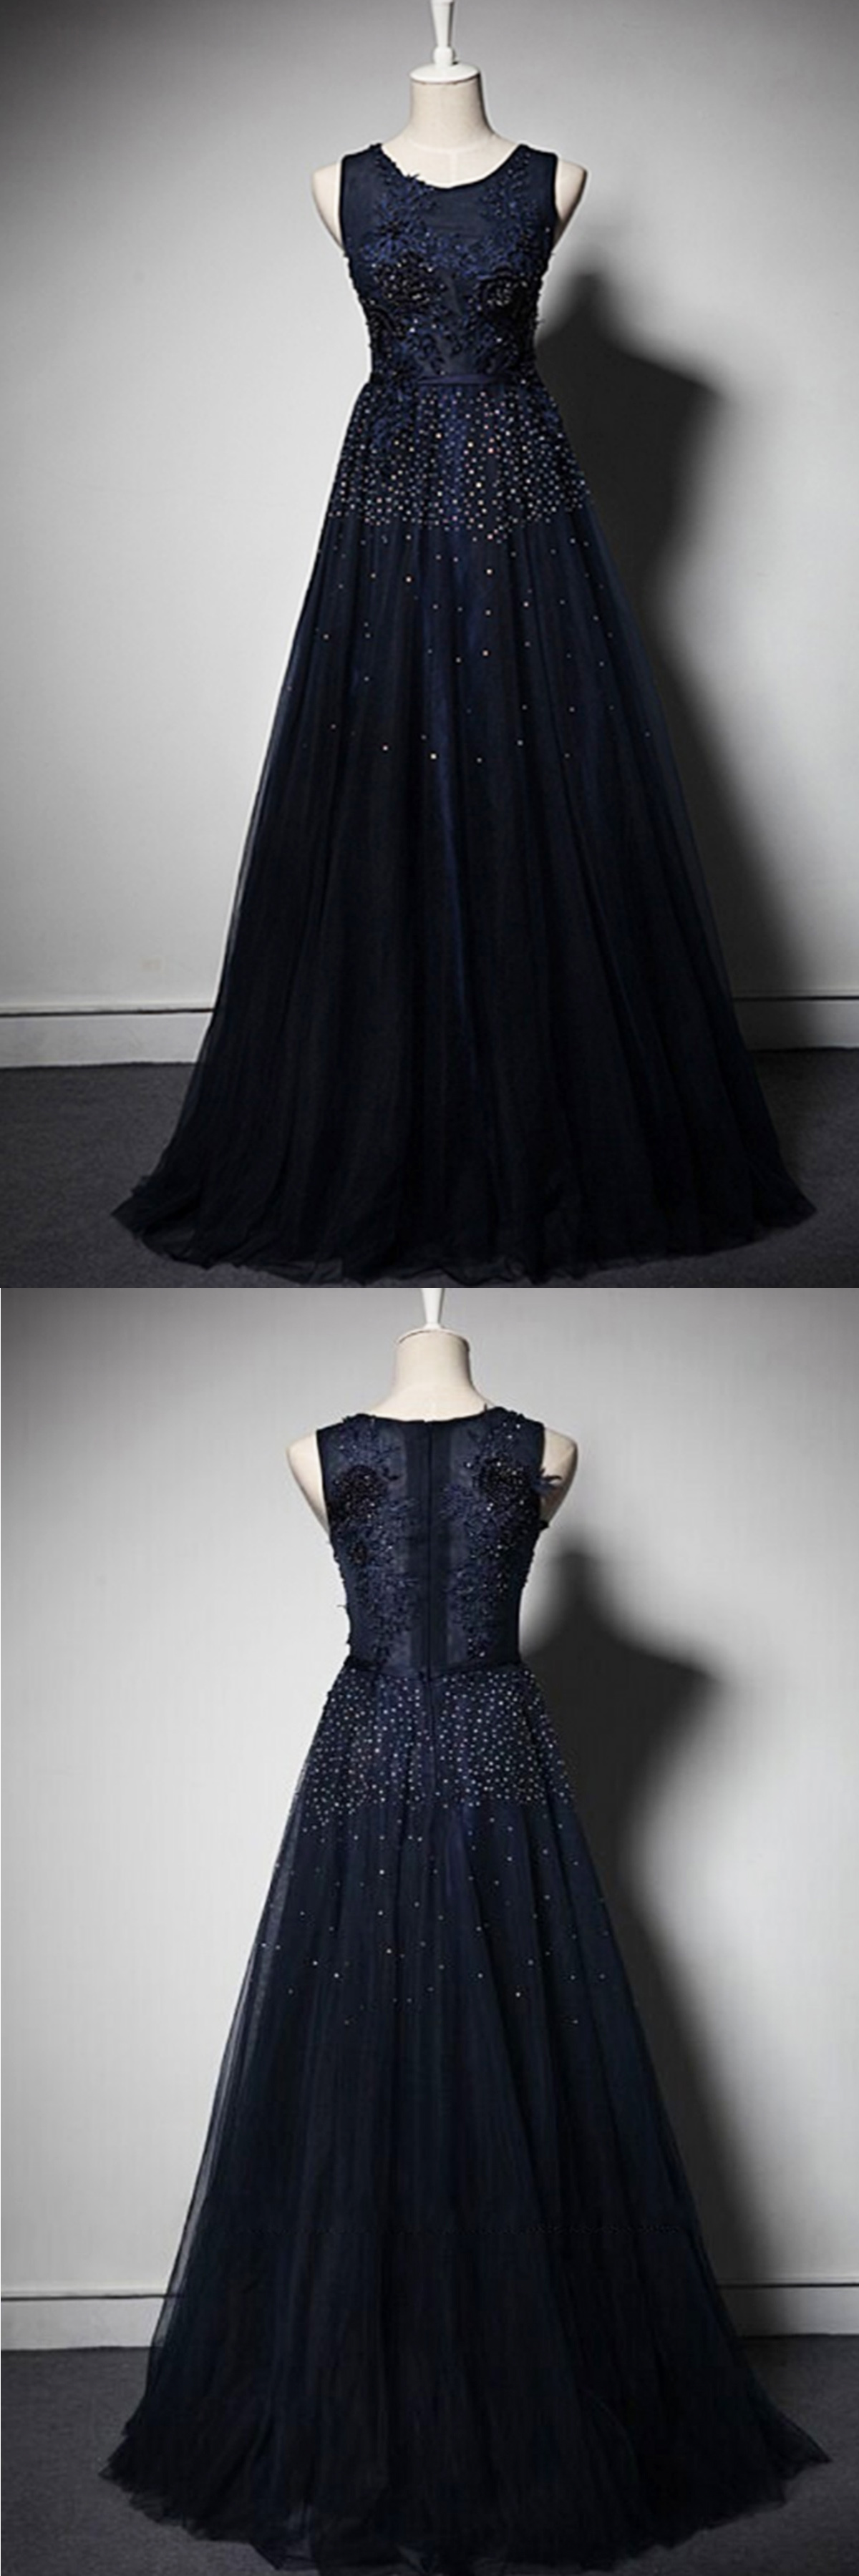 Cute navy blue tulle long prom dress for teens evening gowns